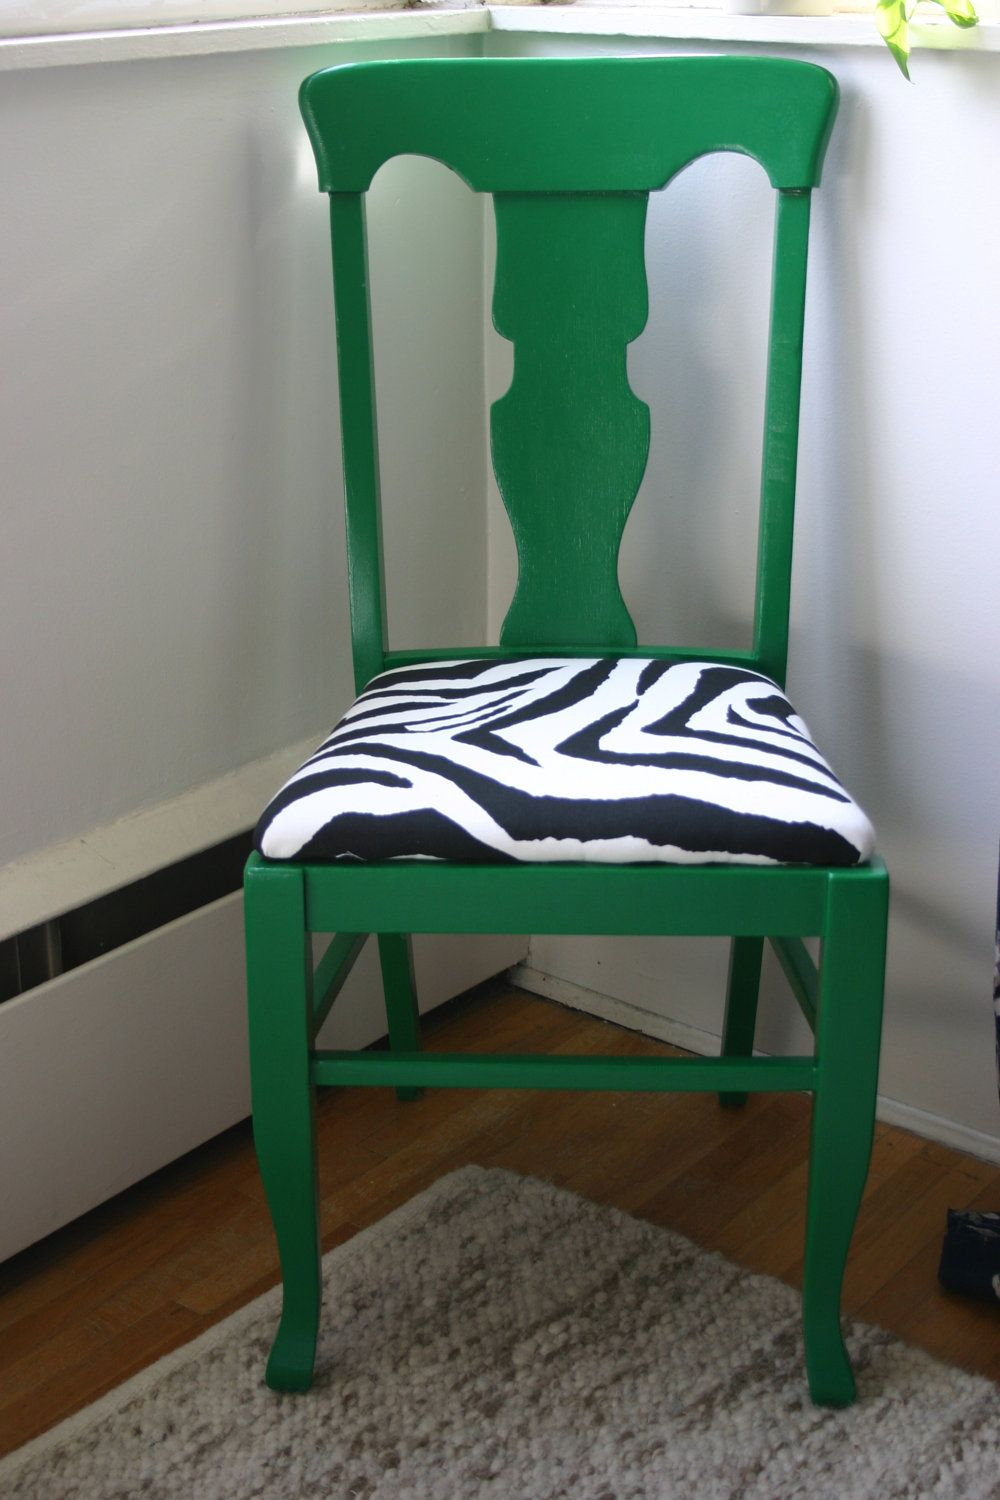 vintage chair green dining chair with zebra print seat cushion